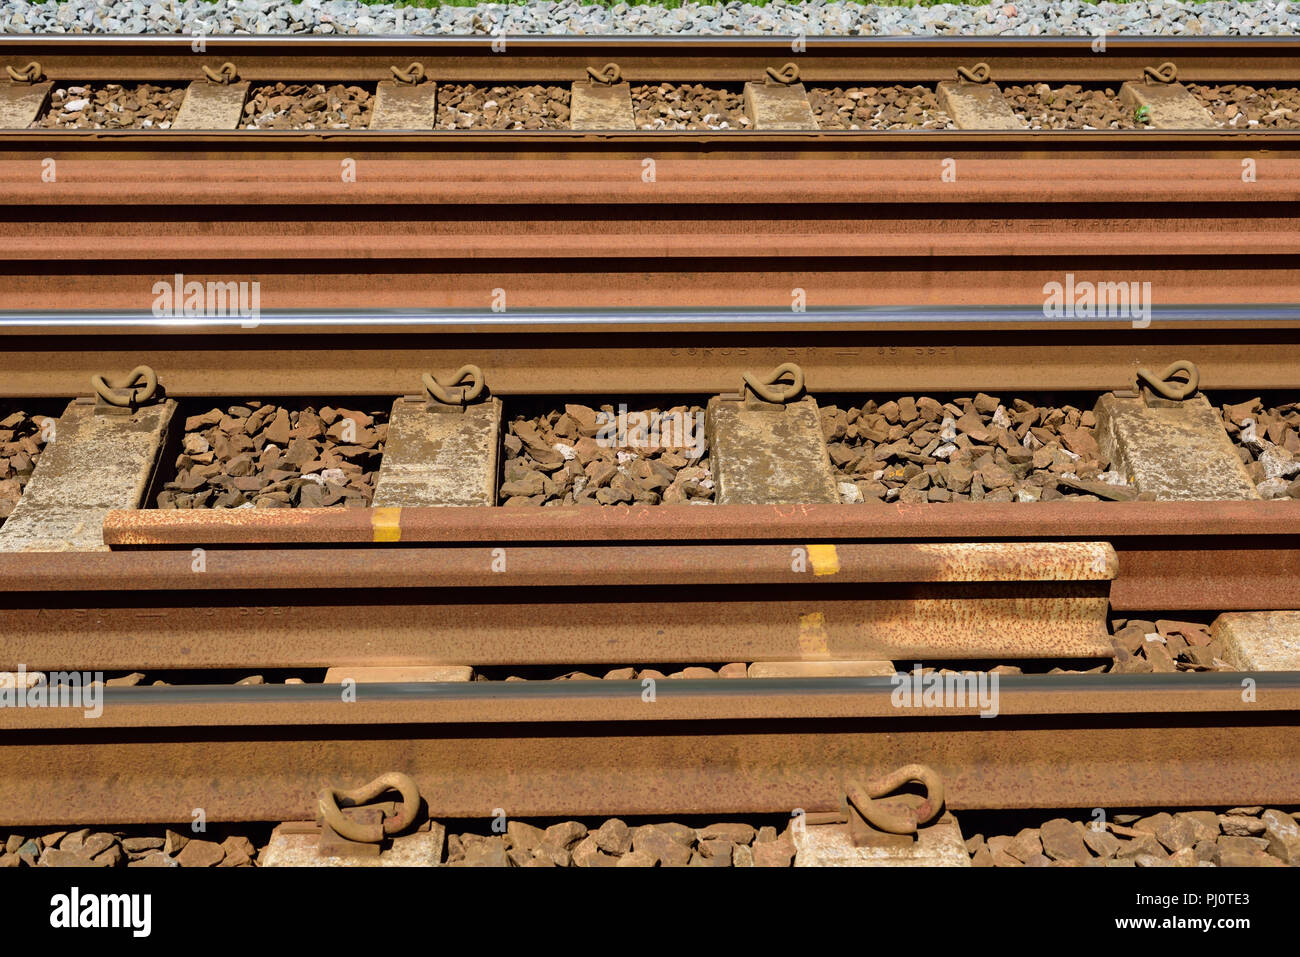 Spare long-welded rails stored between the running lines